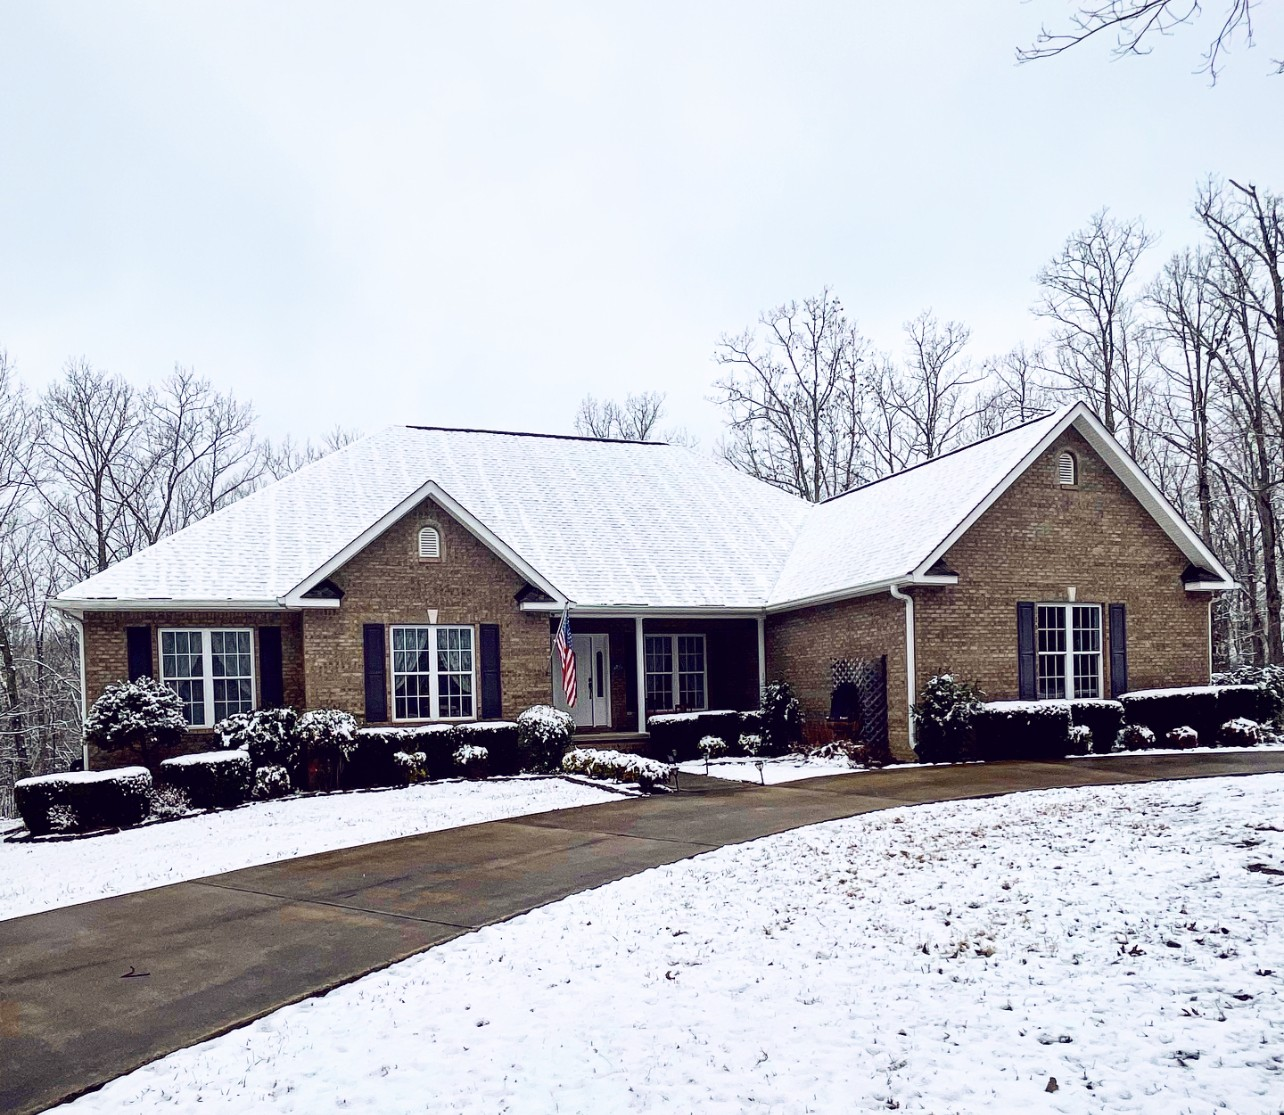 225 Serenity Rdg Property Photo - Sparta, TN real estate listing